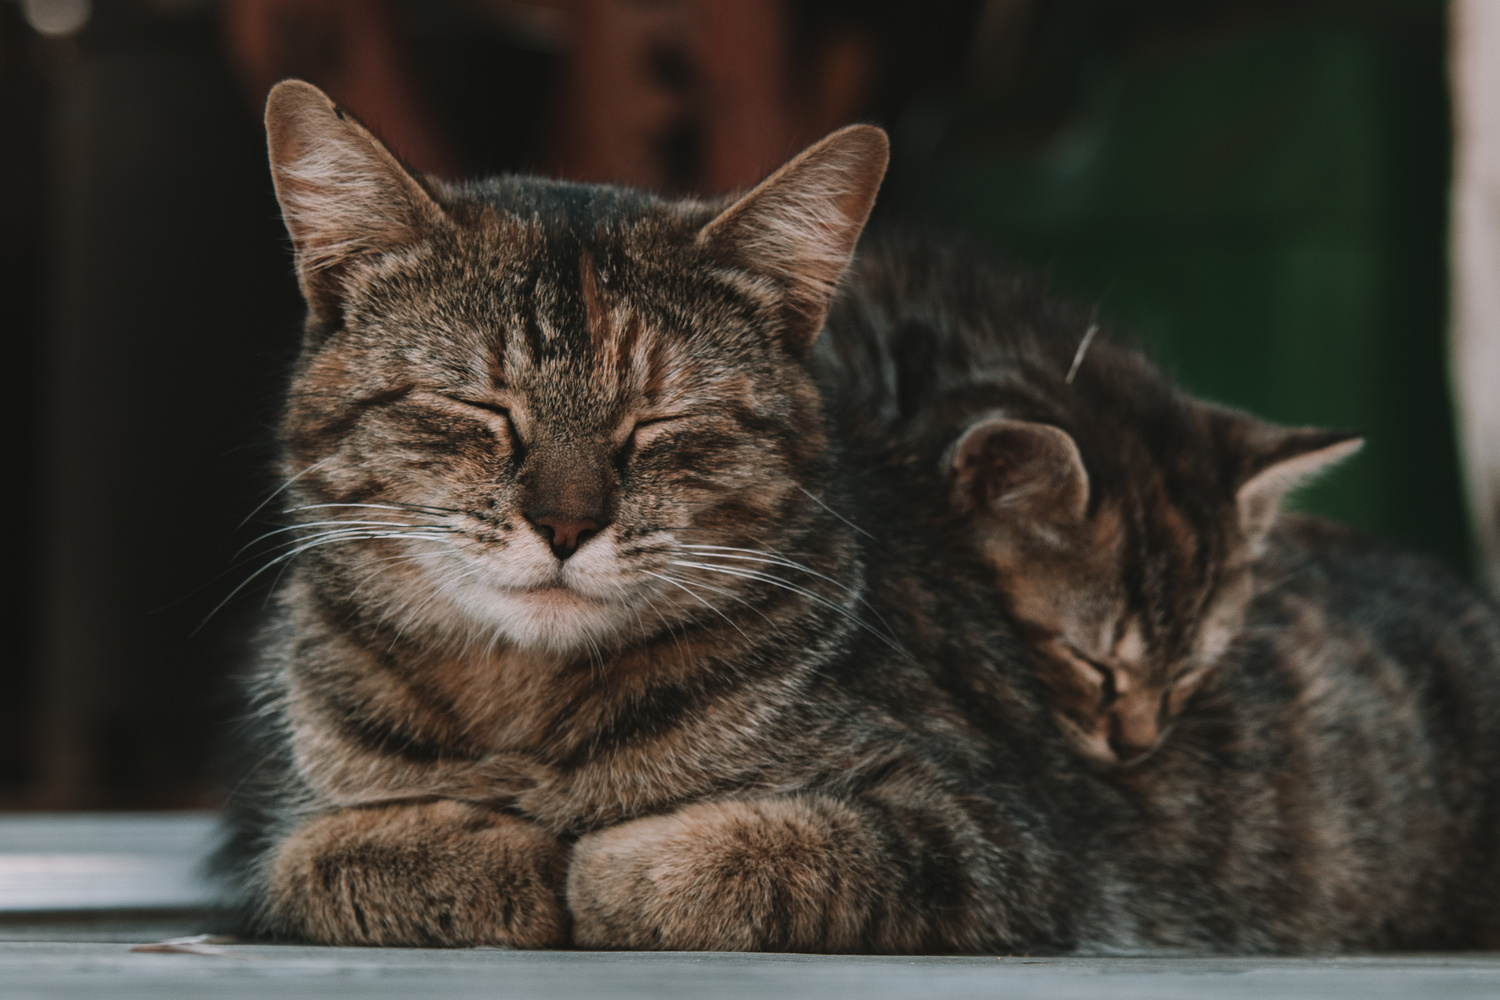 Afternoon Catnap by Jacob Pelley